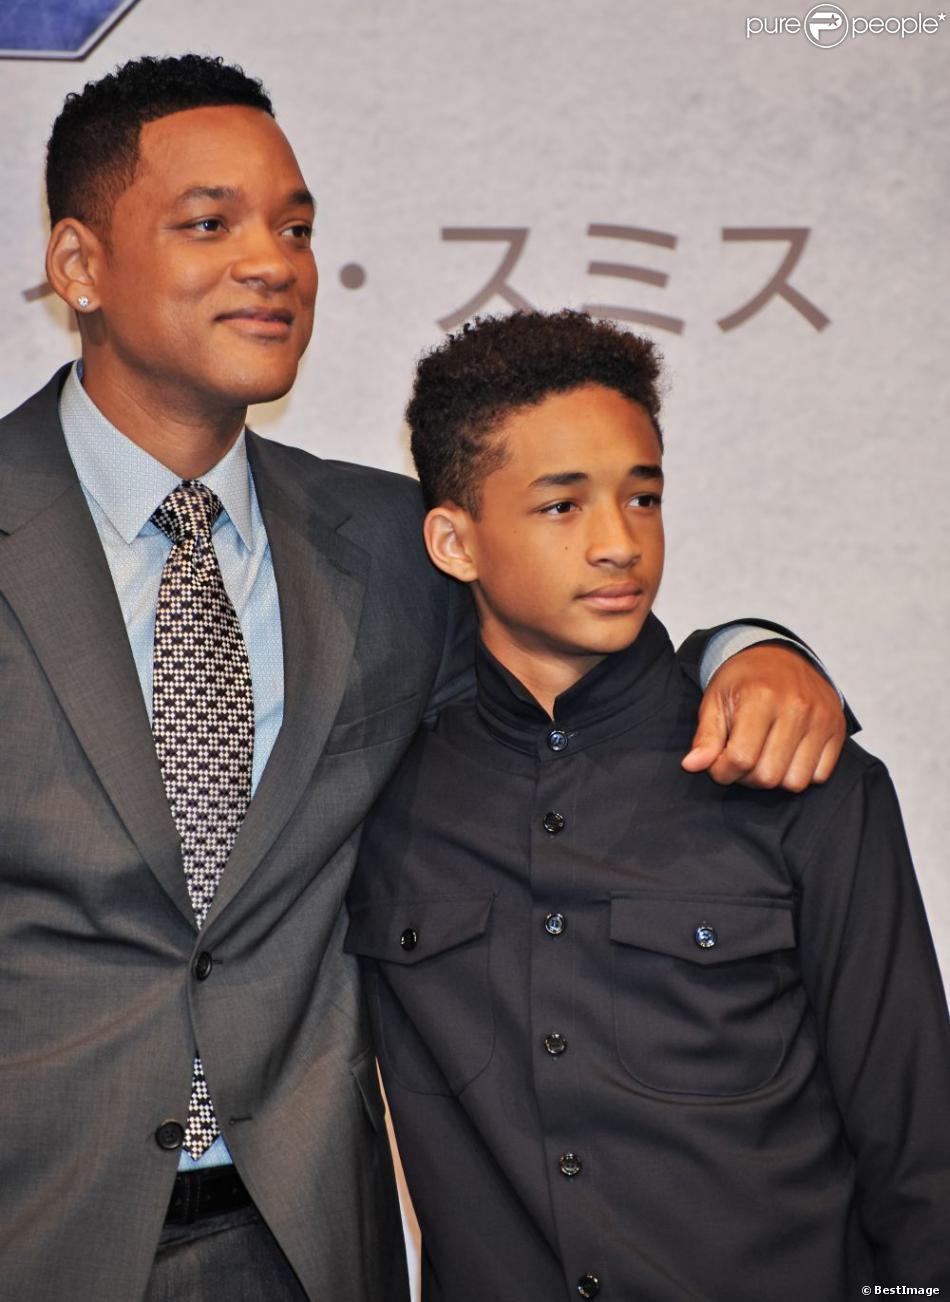 Will Smith et son fils Jaden Smith à la conférence de presse du film  After Earth  à Tokyo, le 2 mai 2013.